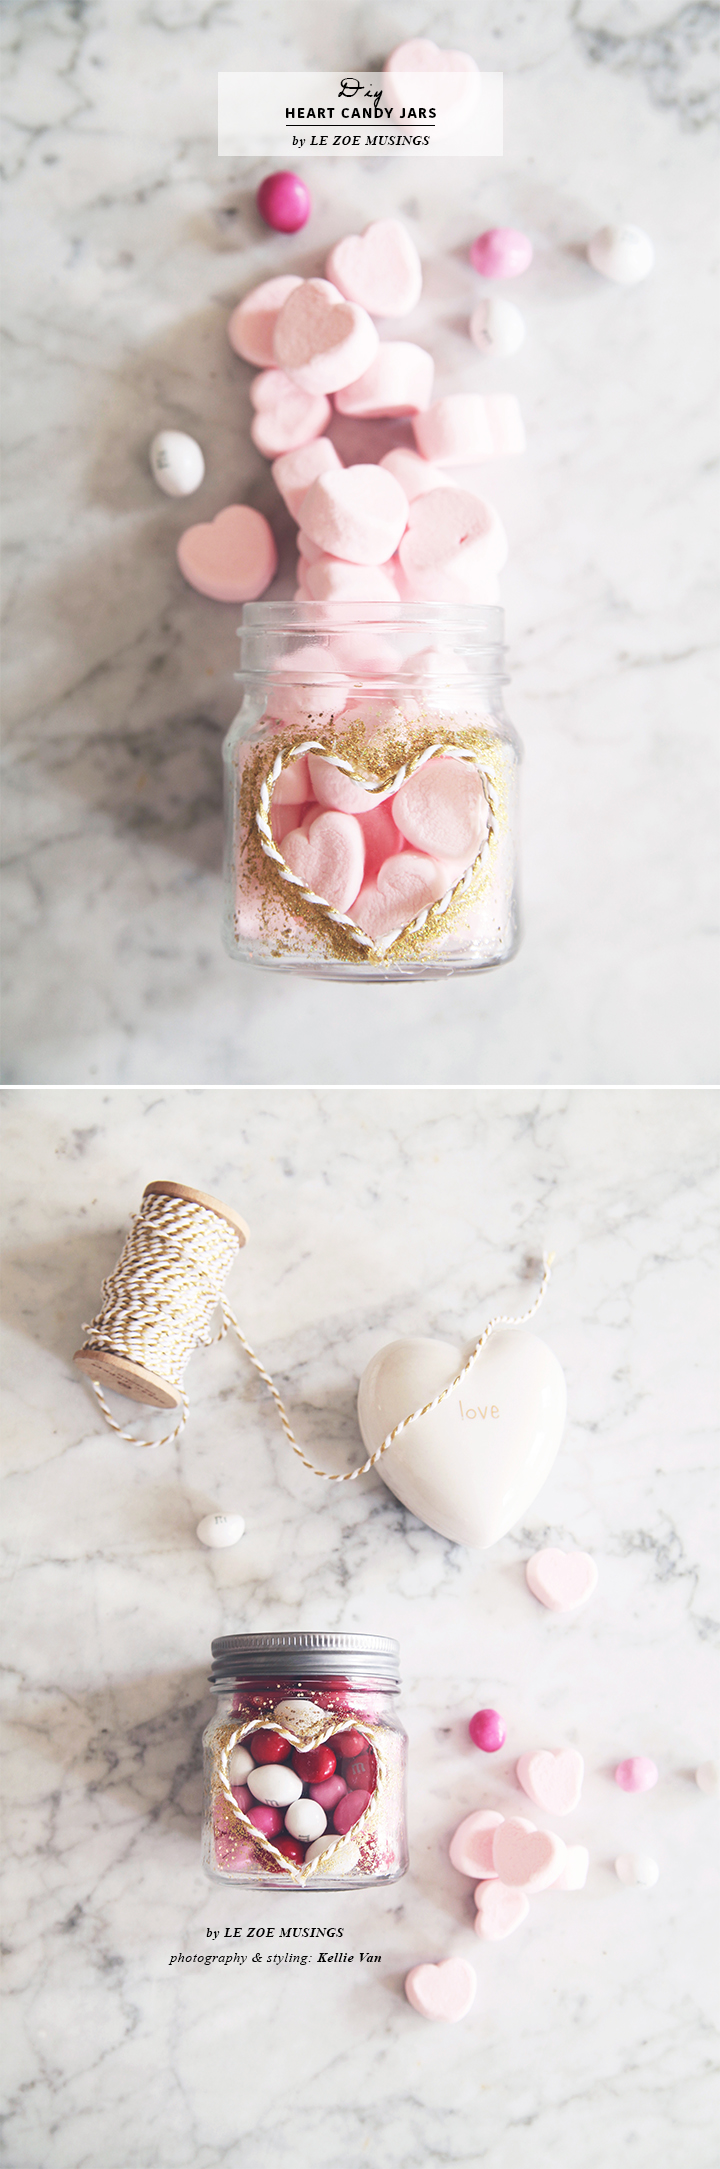 valentine-heart-candy-jars-by-le-zoe-musings3